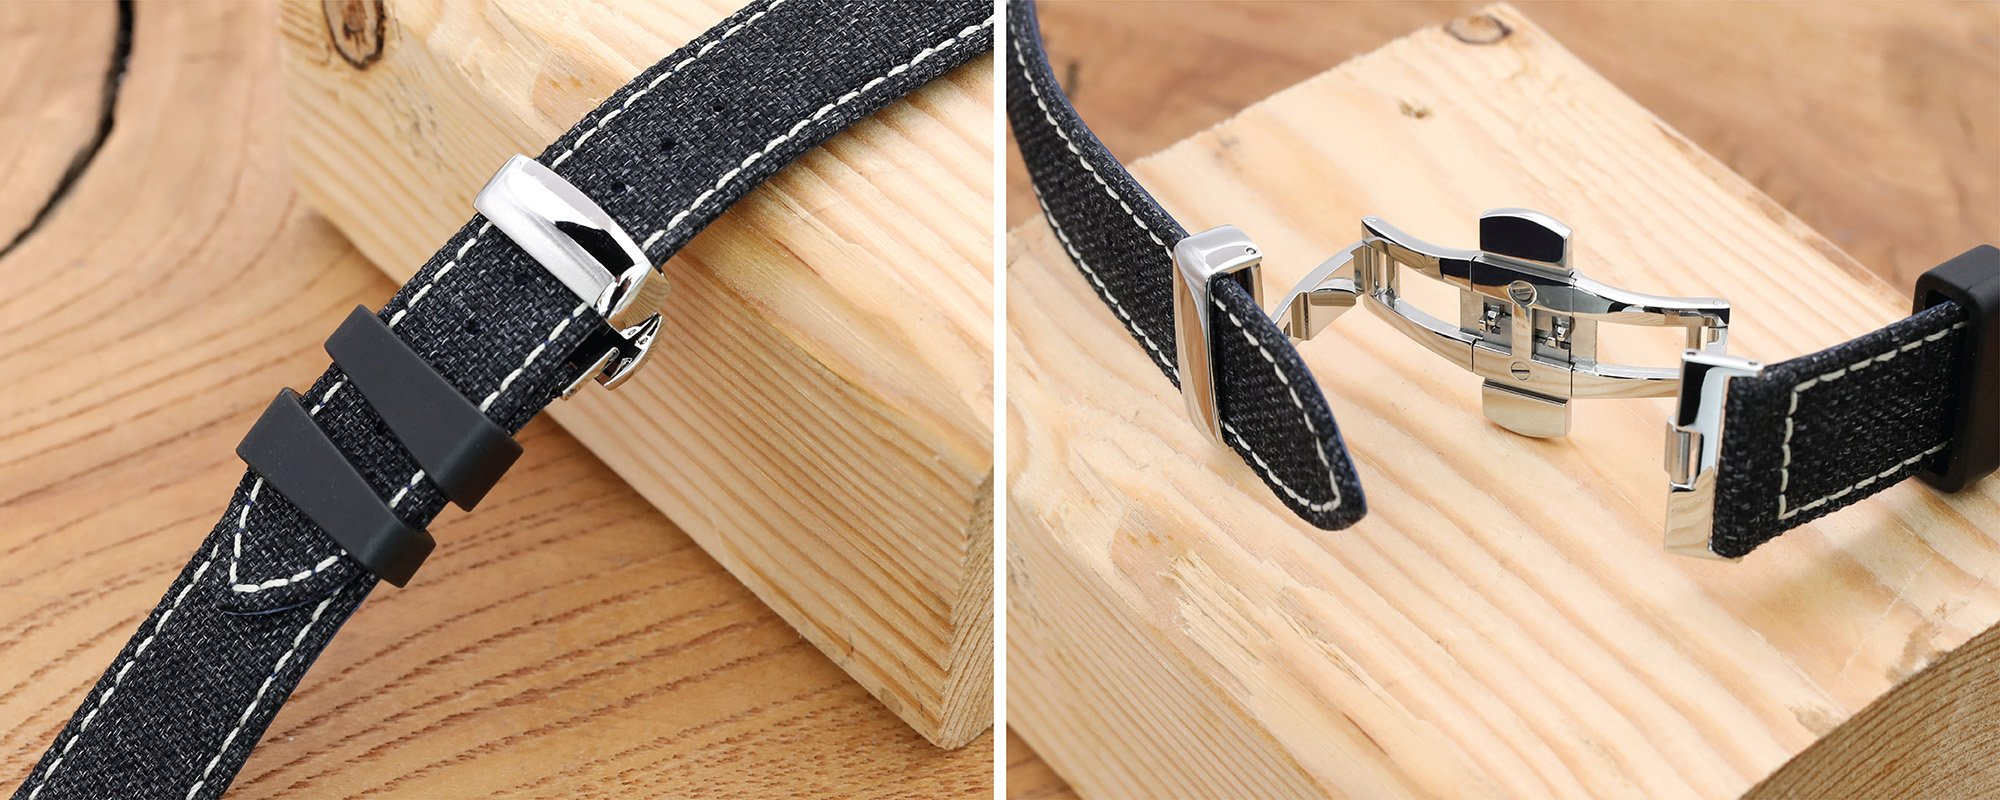 8-Strapcode-watch-bands-5-Butterfly-Clasps-01